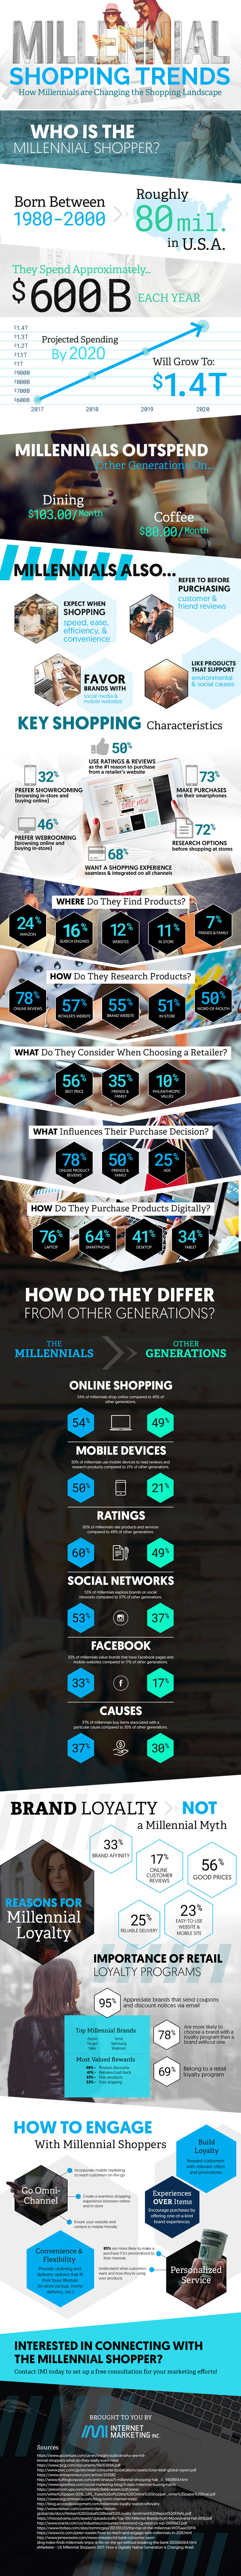 Millennial Shopping Trends Infographic